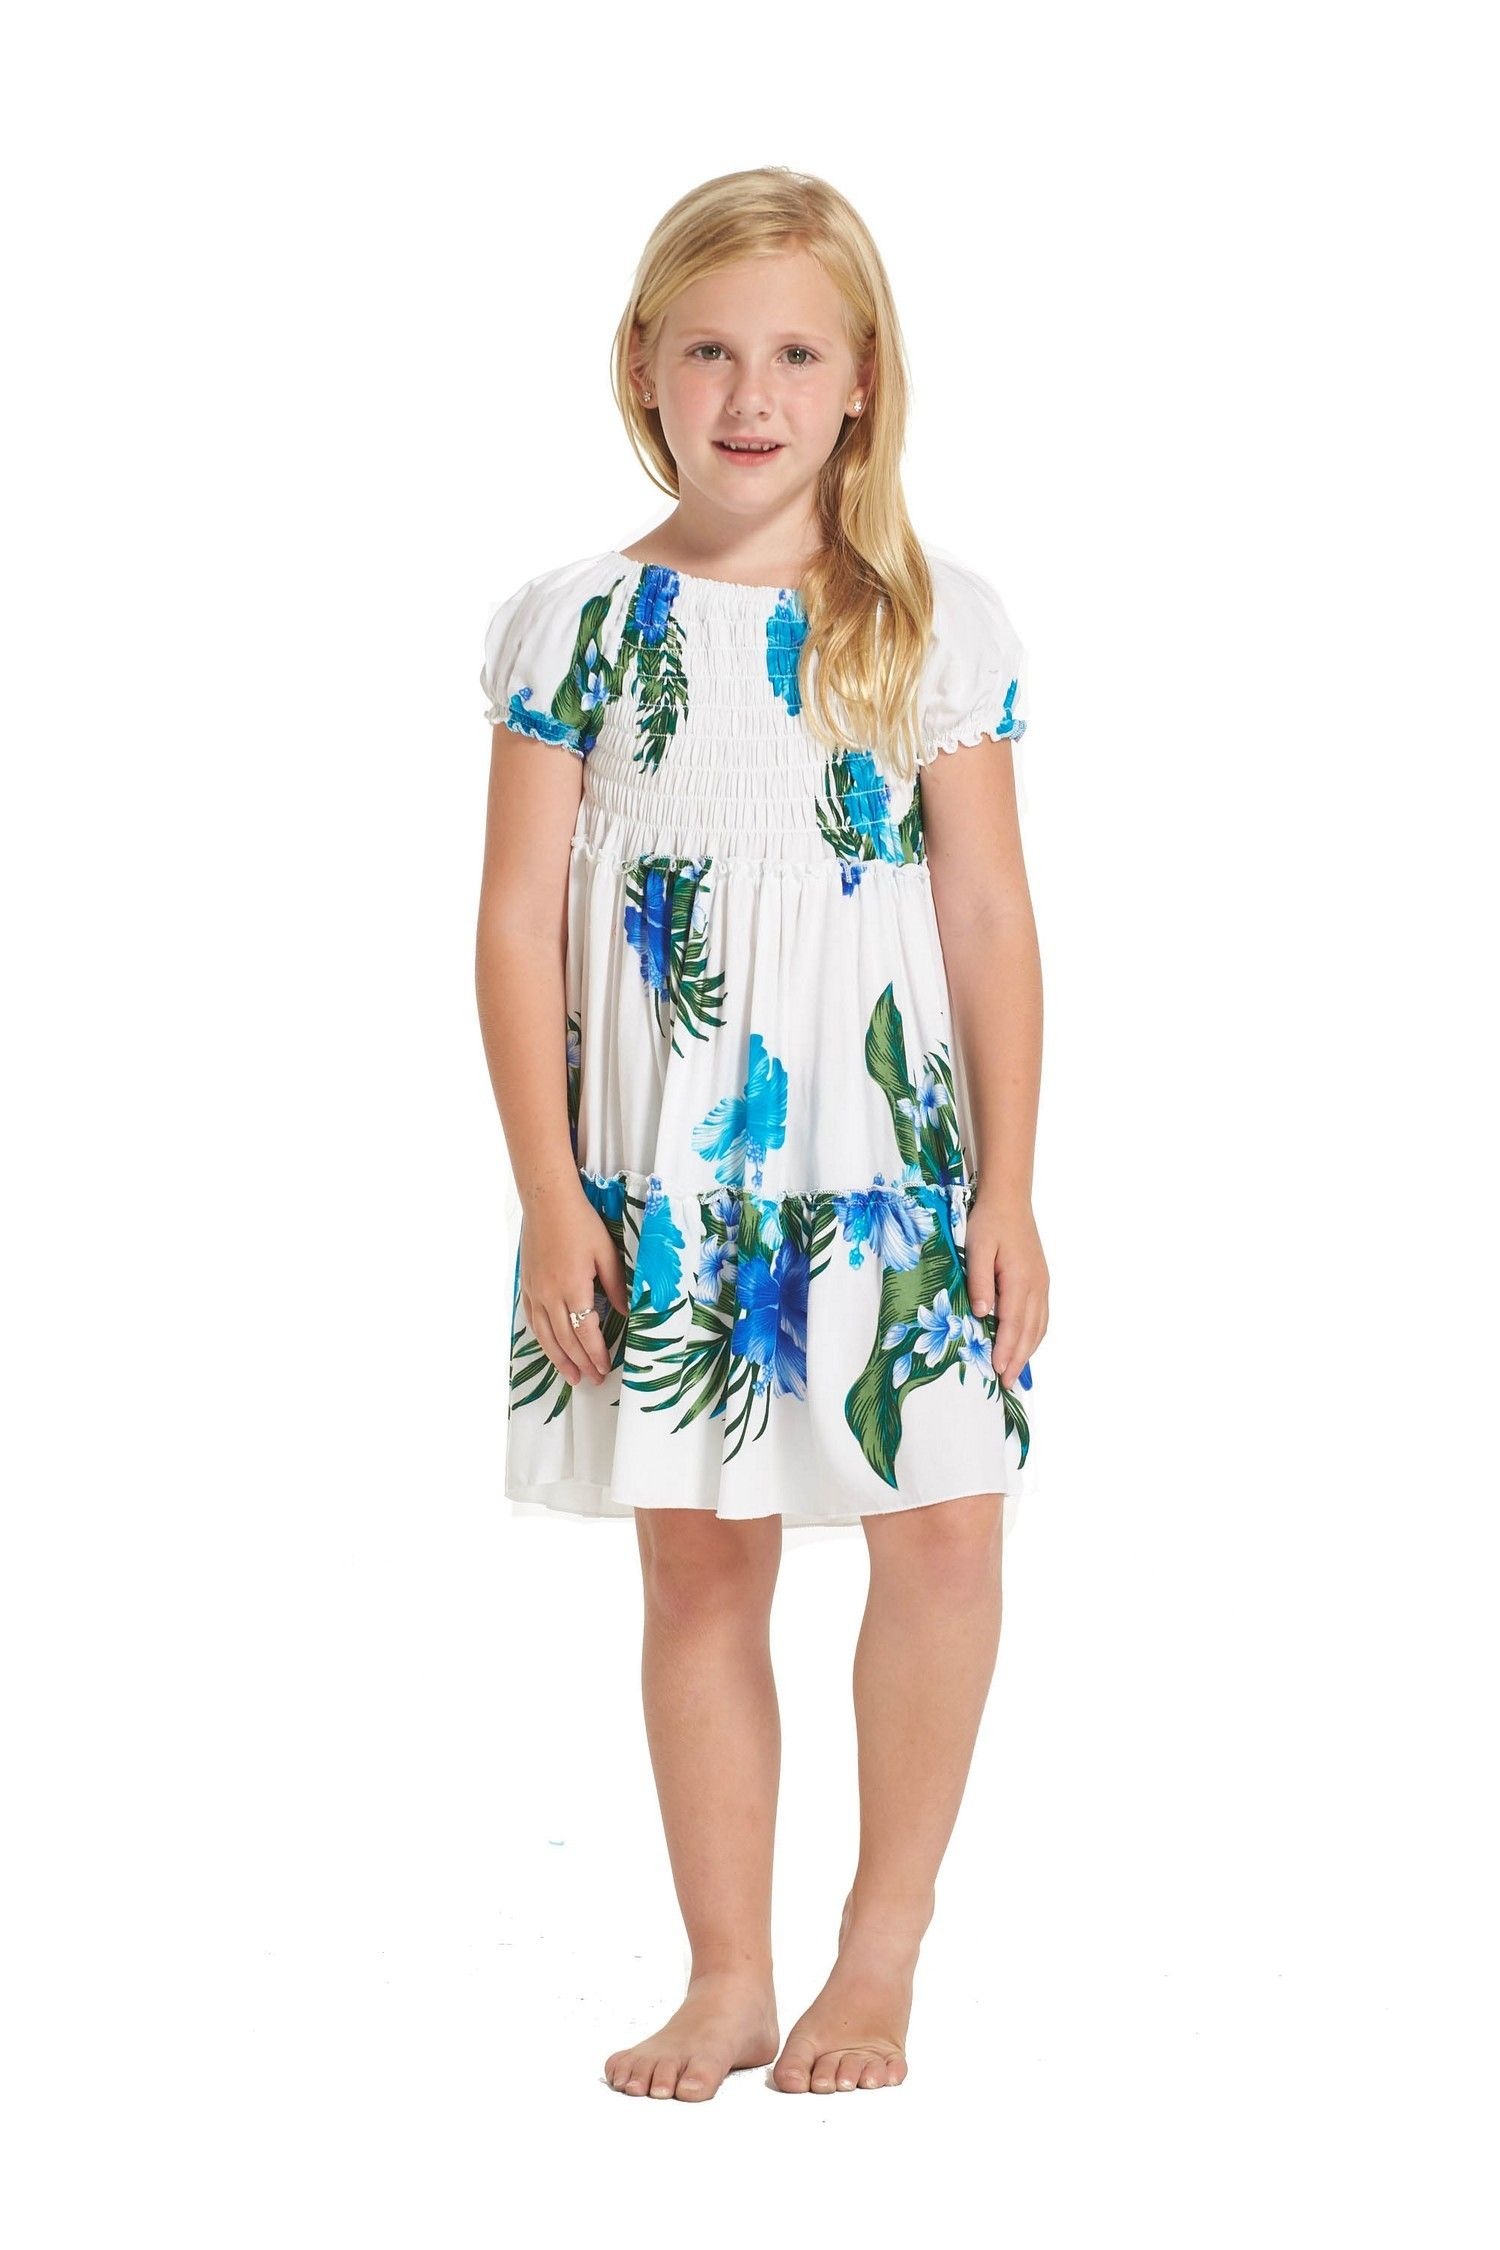 6b6966a55e8 Girl Short Sleeve Top Ruffle Dress with Blue Floral in White